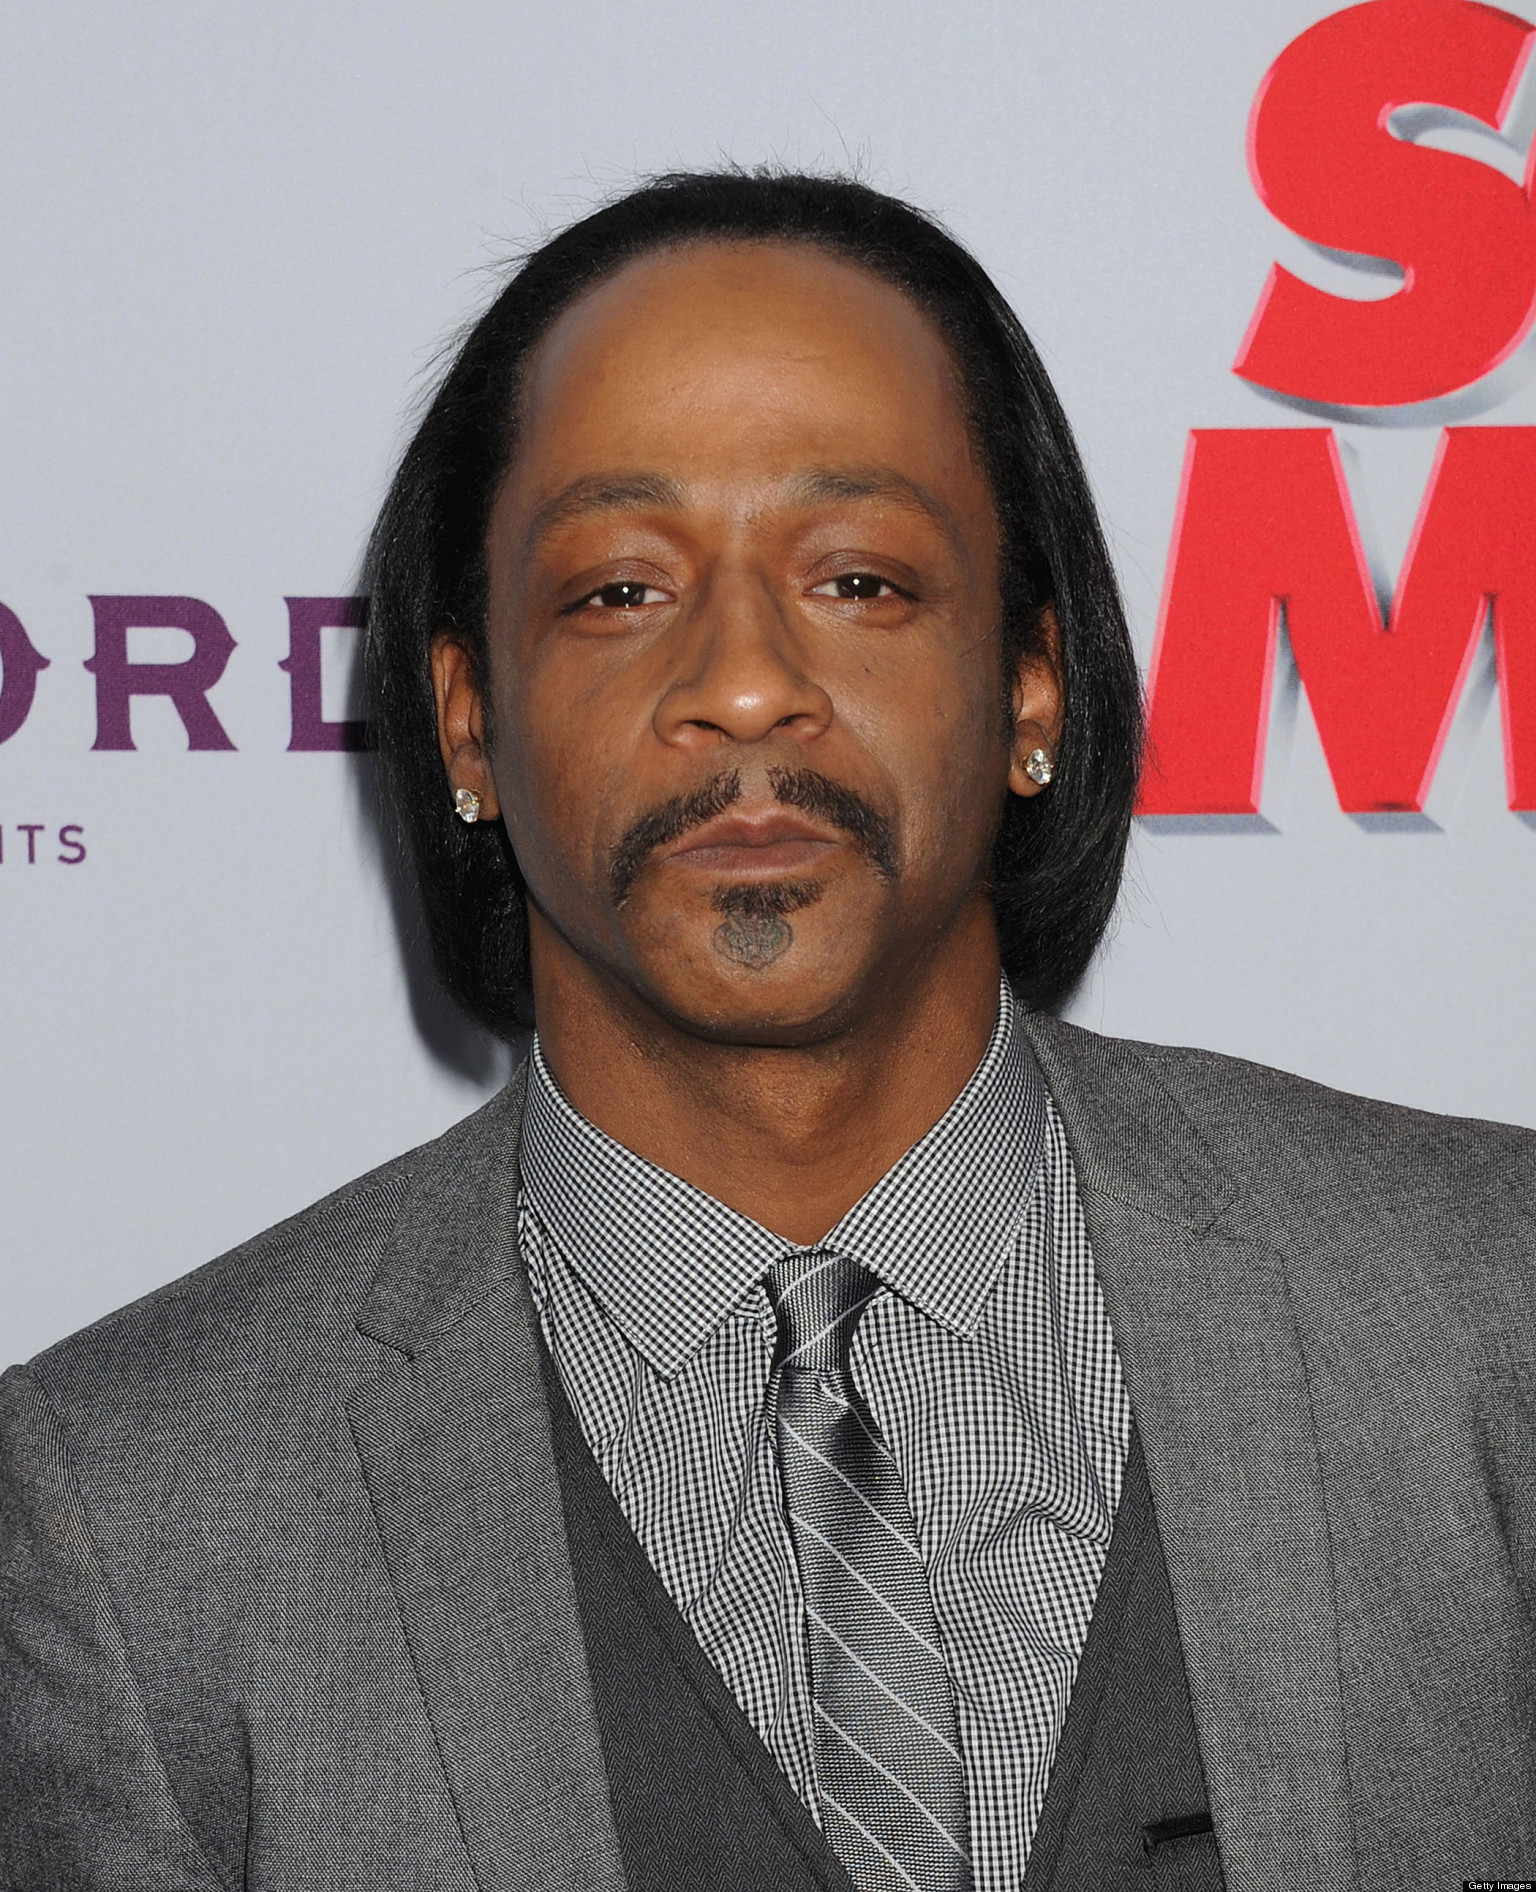 Katt Williams Katt Williams Sentenced To